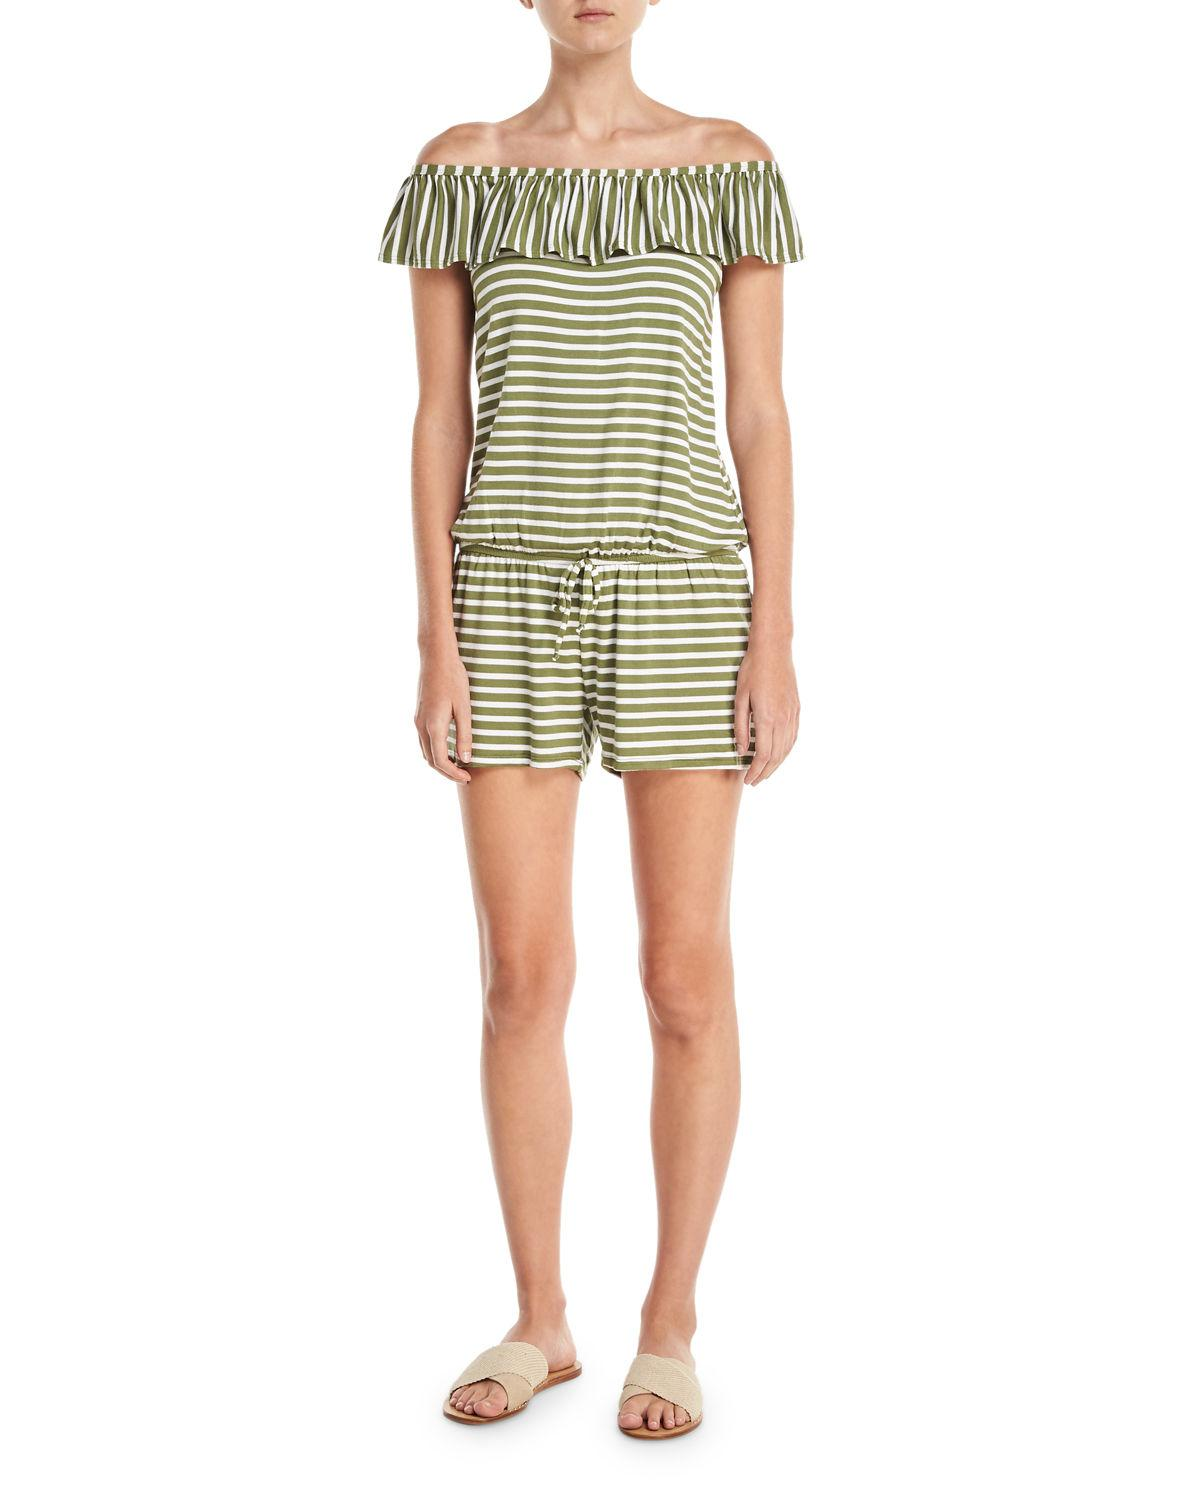 a2830da3c12d Lyst - Splendid Striped Coverup Romper in Green